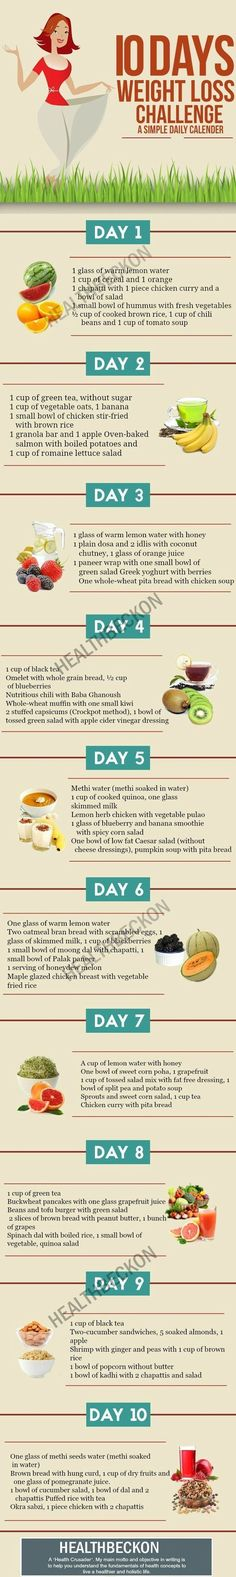 quick weight loss tips after pregnancy